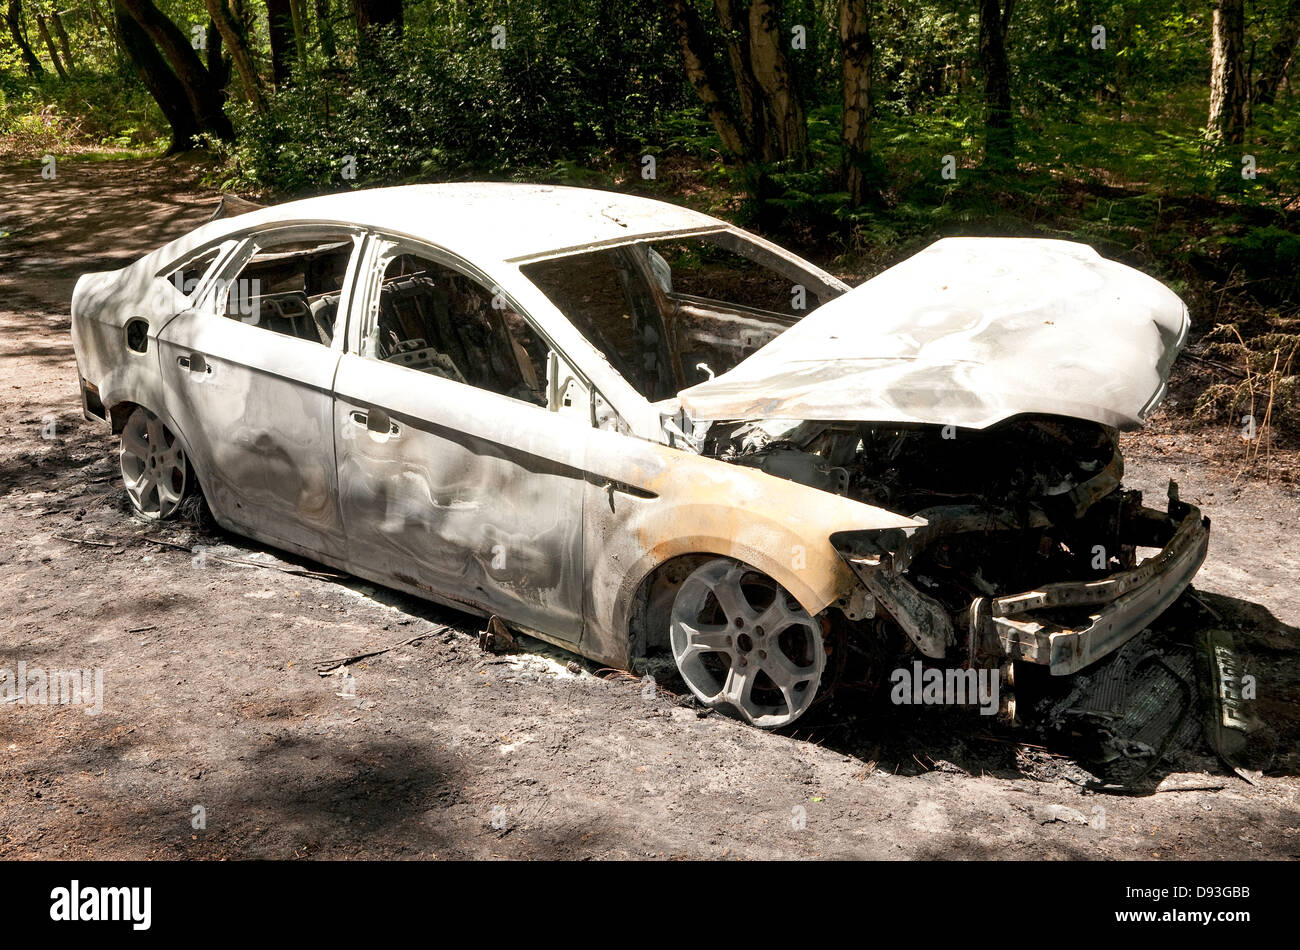 burnt out car in woodland park, norfolk, england - Stock Image